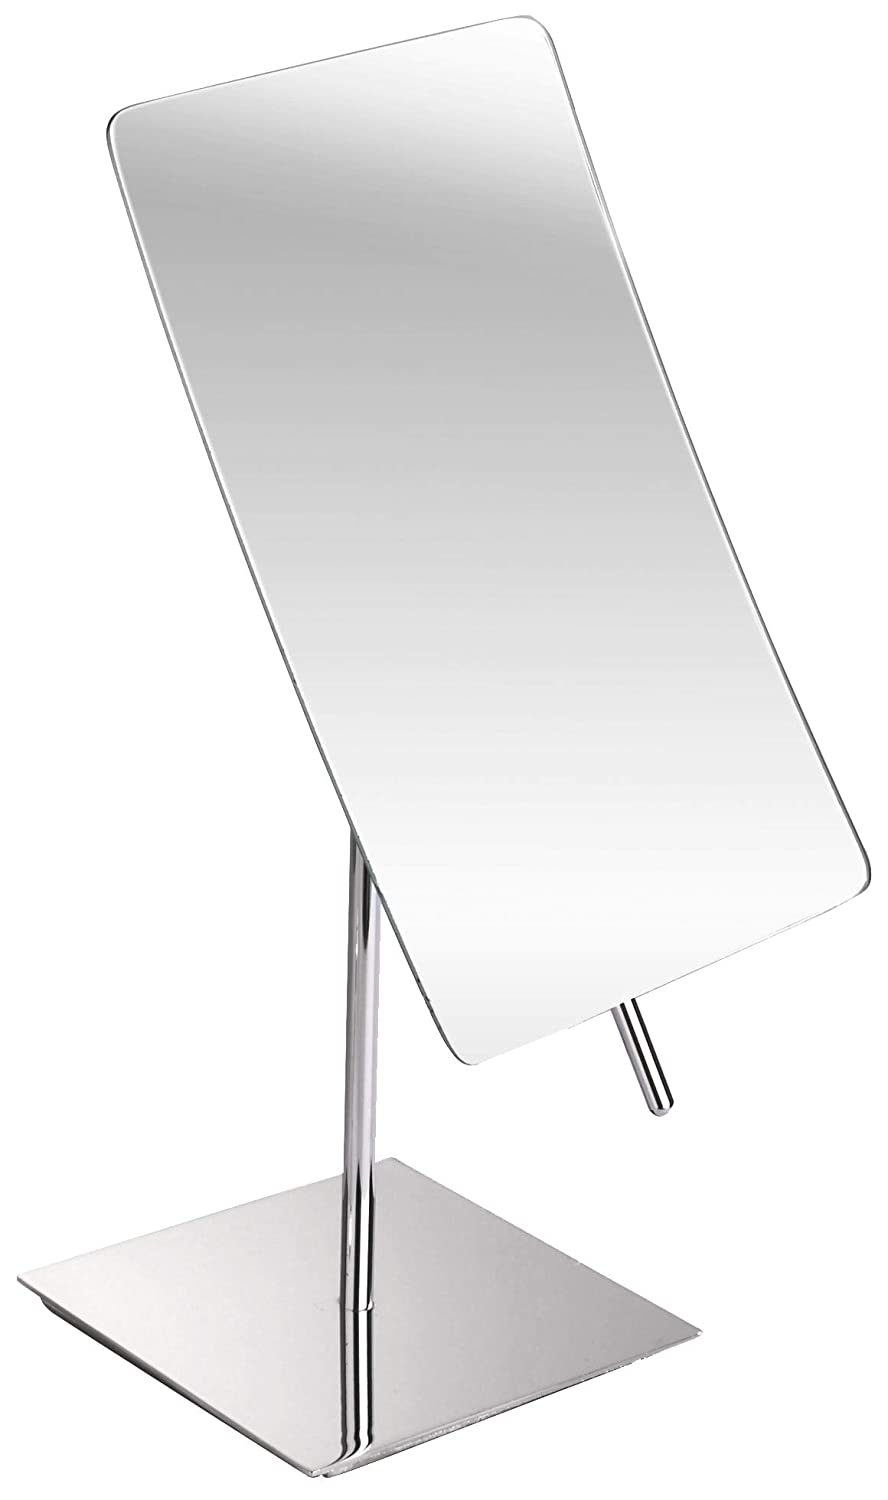 5X Magnified Premium Modern Rectangle Vanity Makeup Mirror 100% Guarantee | Portable Polished Chrome Contemporary Finish | Adjustable Easy Positioning | Best Luxury Quality Magnifying Beauty Mirror